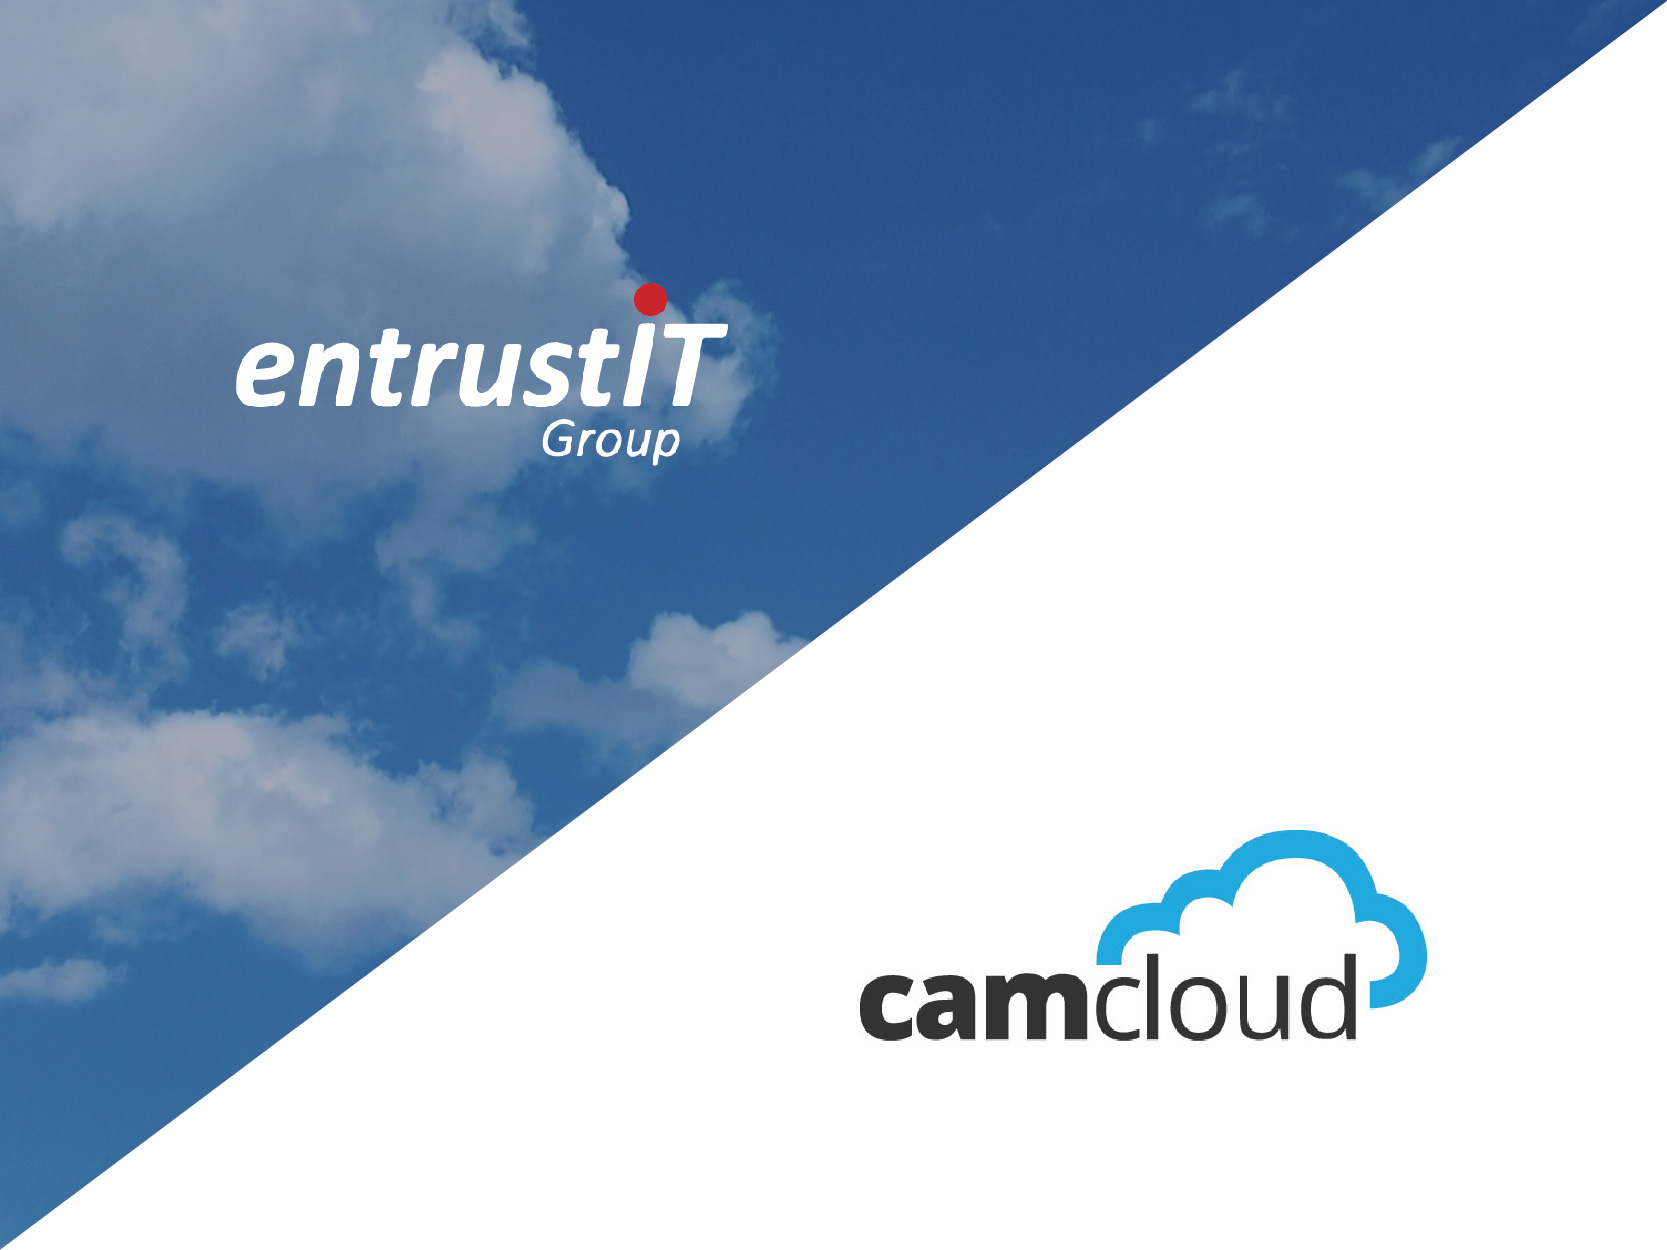 entrust IT Group and Camcloud